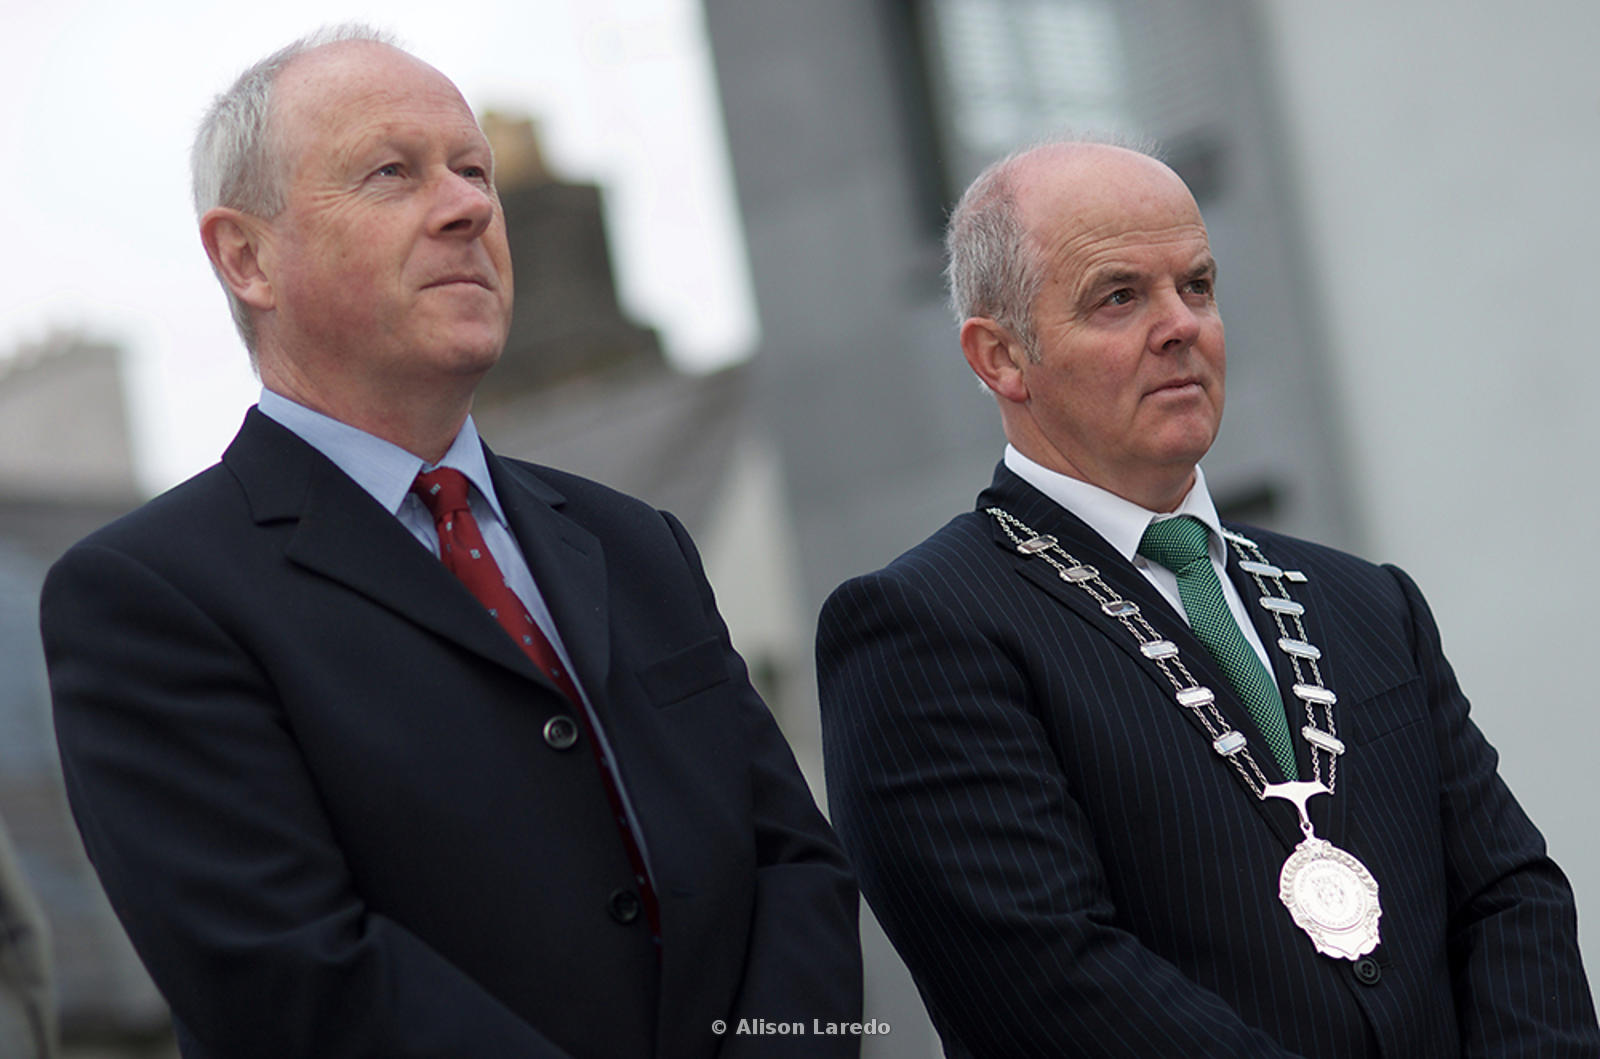 Mayo County Council Director of Services, Paddy Mahon and Cllr Blackie Gavin at the 1916 Commemoration, Castlebar PHOTO: ALISON LAREDO